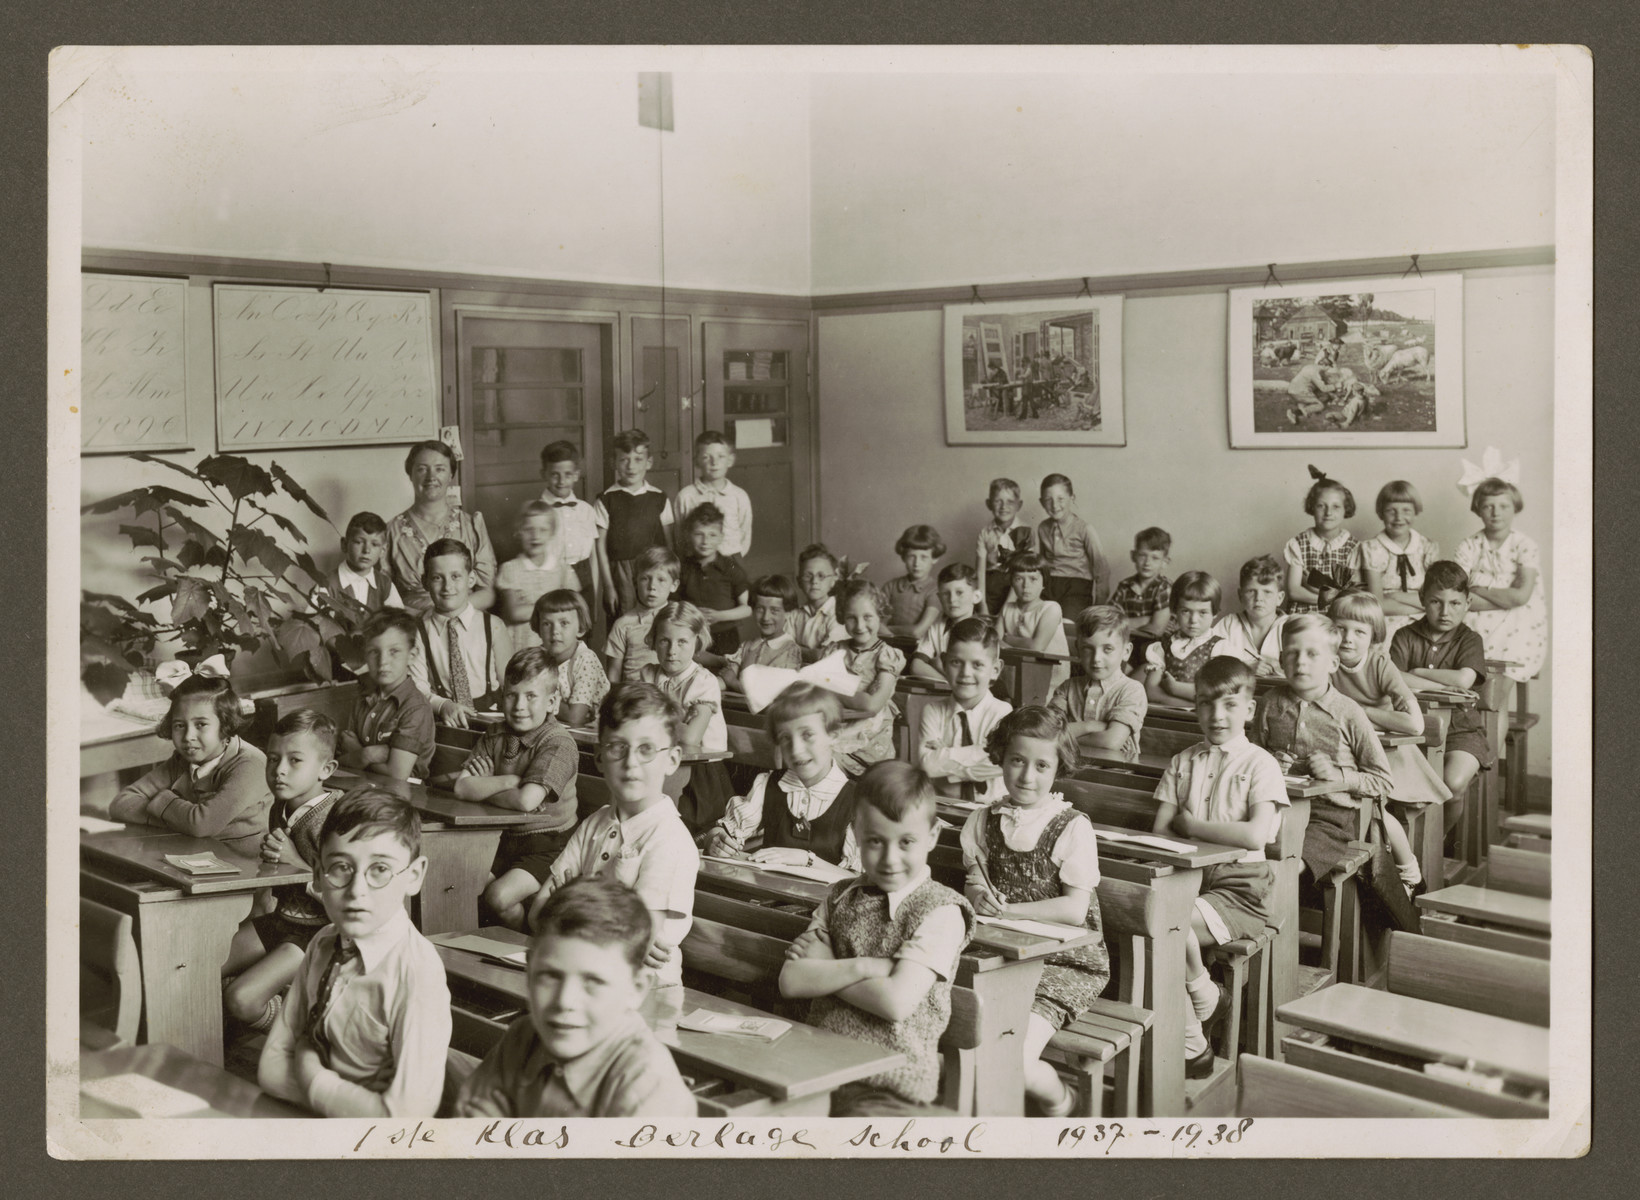 Group portrait of children in an elementary class in the Berlage school in Amsterdam.  Elisabeth Rodrigues is pictured in the middle, second from the left with dark hair.